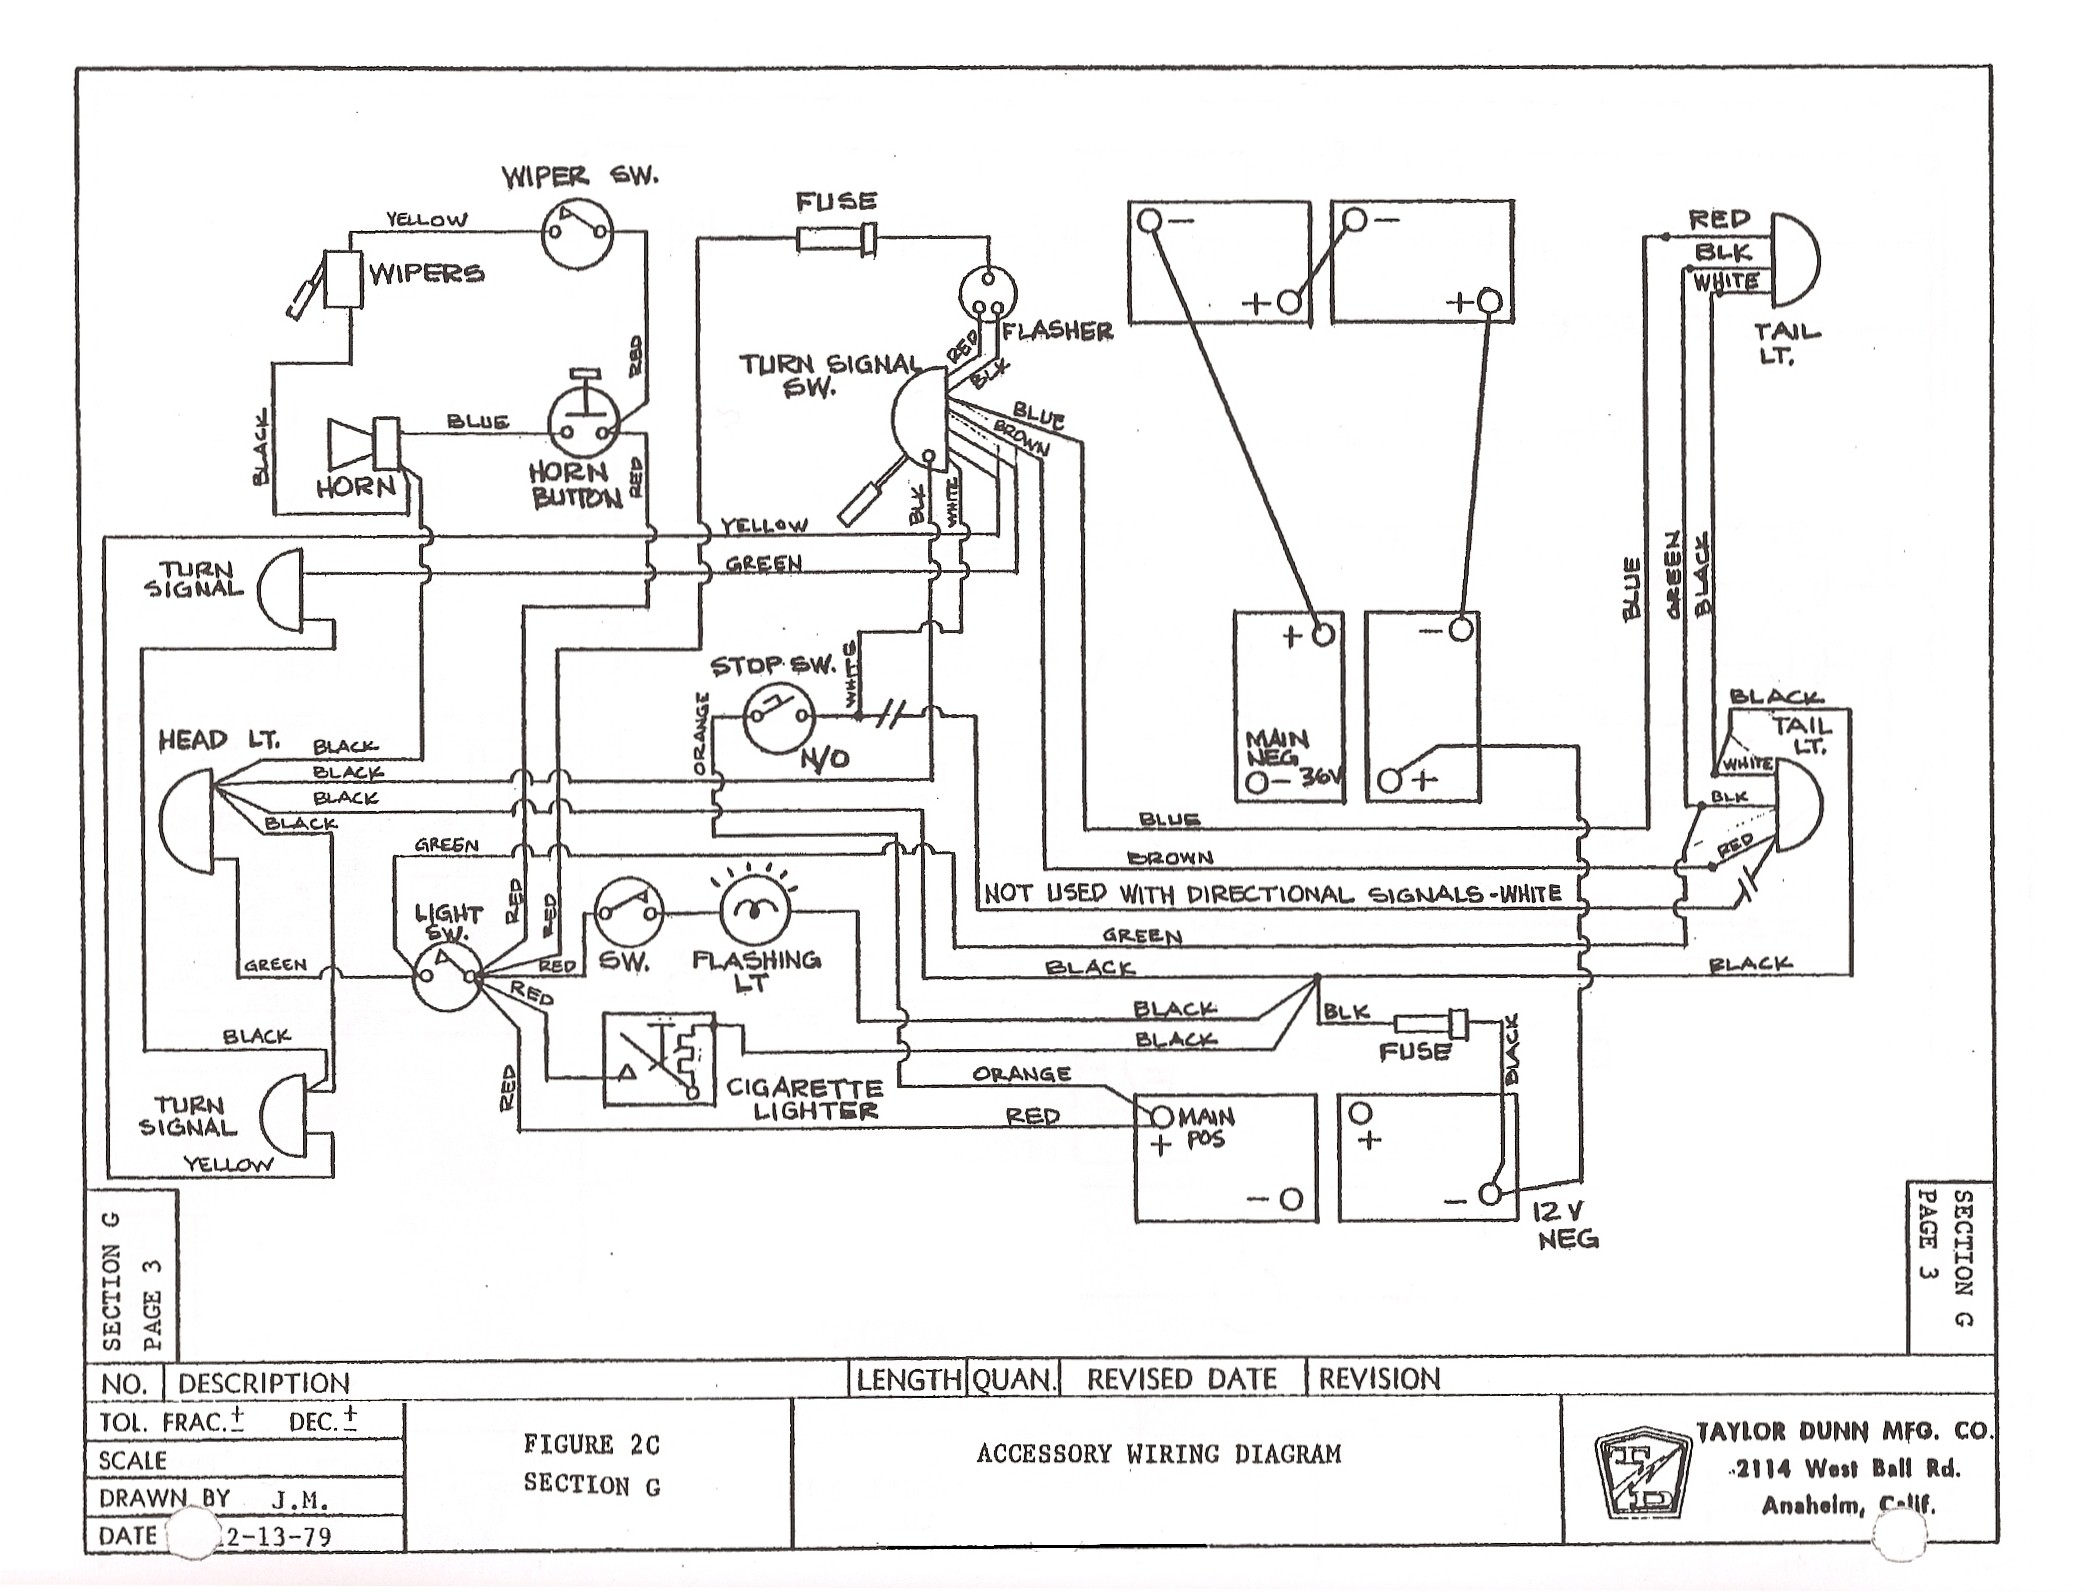 Diagram Of Club Car Parts Harley Davidson Golf Cart Carburetor Engine 1963 Wiring Free Download